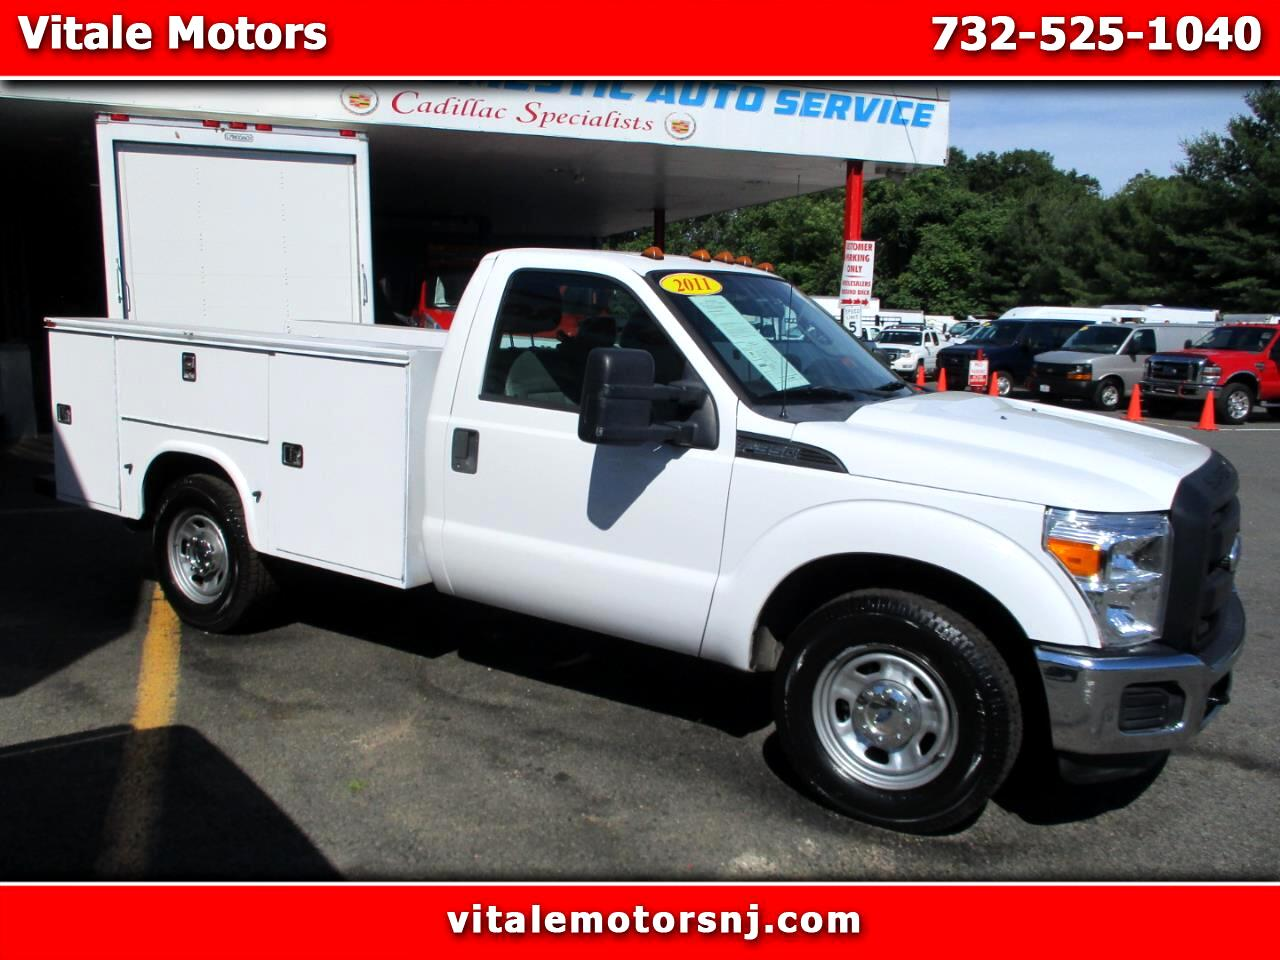 2011 Ford F-350 SD REG. CAB 9 FOOT UTILITY BODY 74K MILES